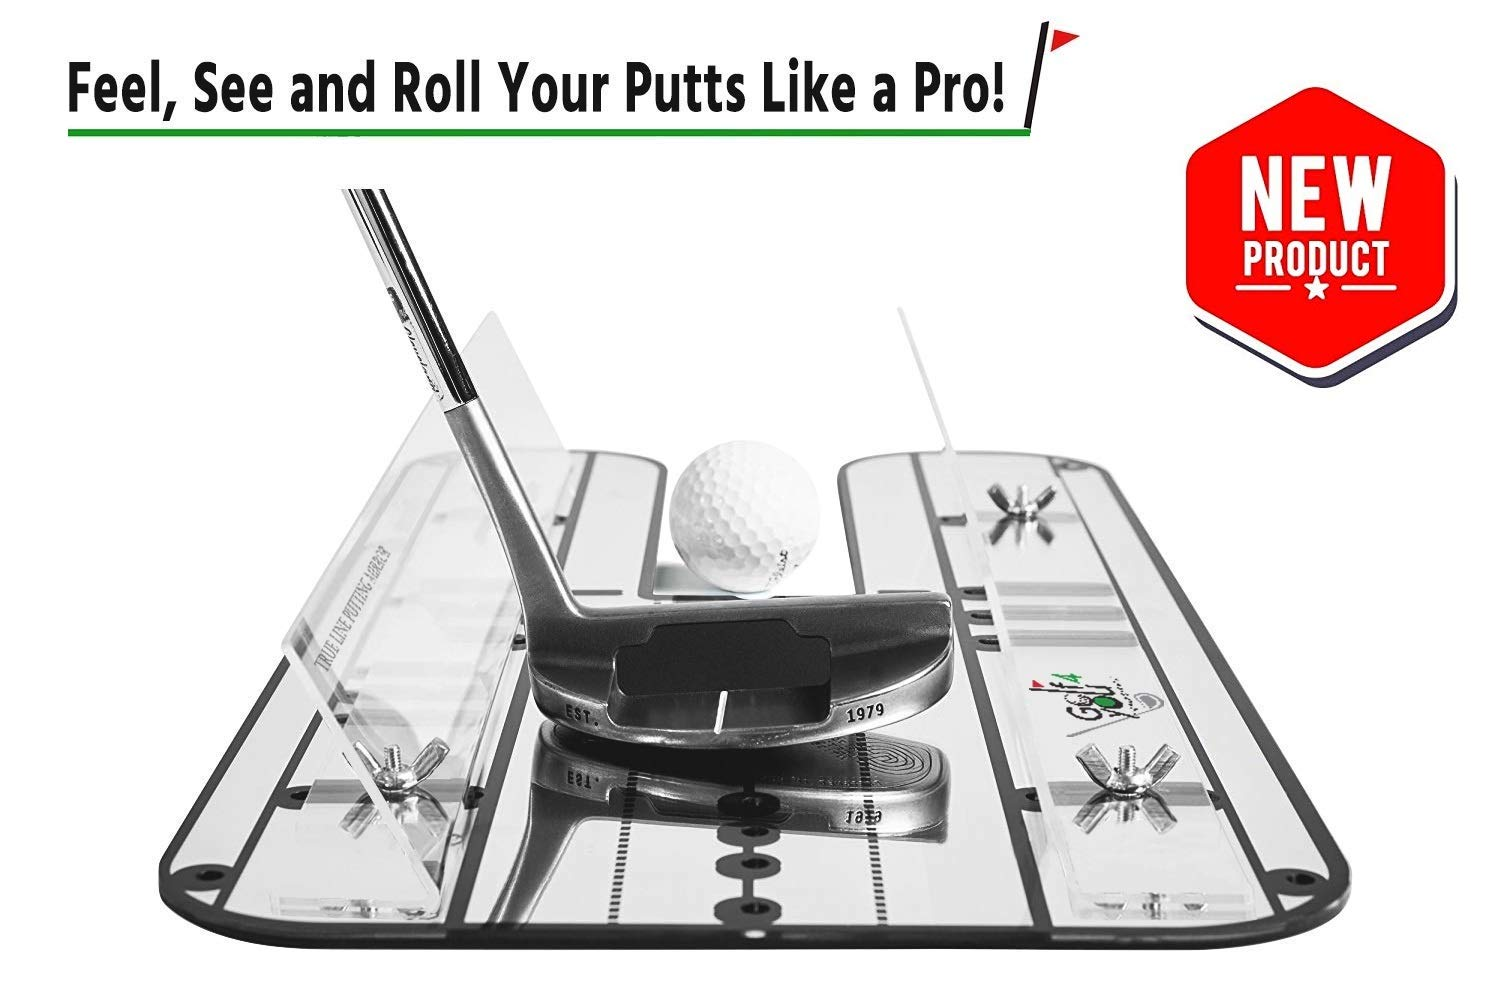 Premium Golf Alignment Putting Mirror   All in One Putting Set - Golf Training Aids to Improve Your Putting Setup. Visualize Eye, Shoulder, Putter Face Angle and Your Putter Path by GOLF4 YOU THE WORLD OF GOLF